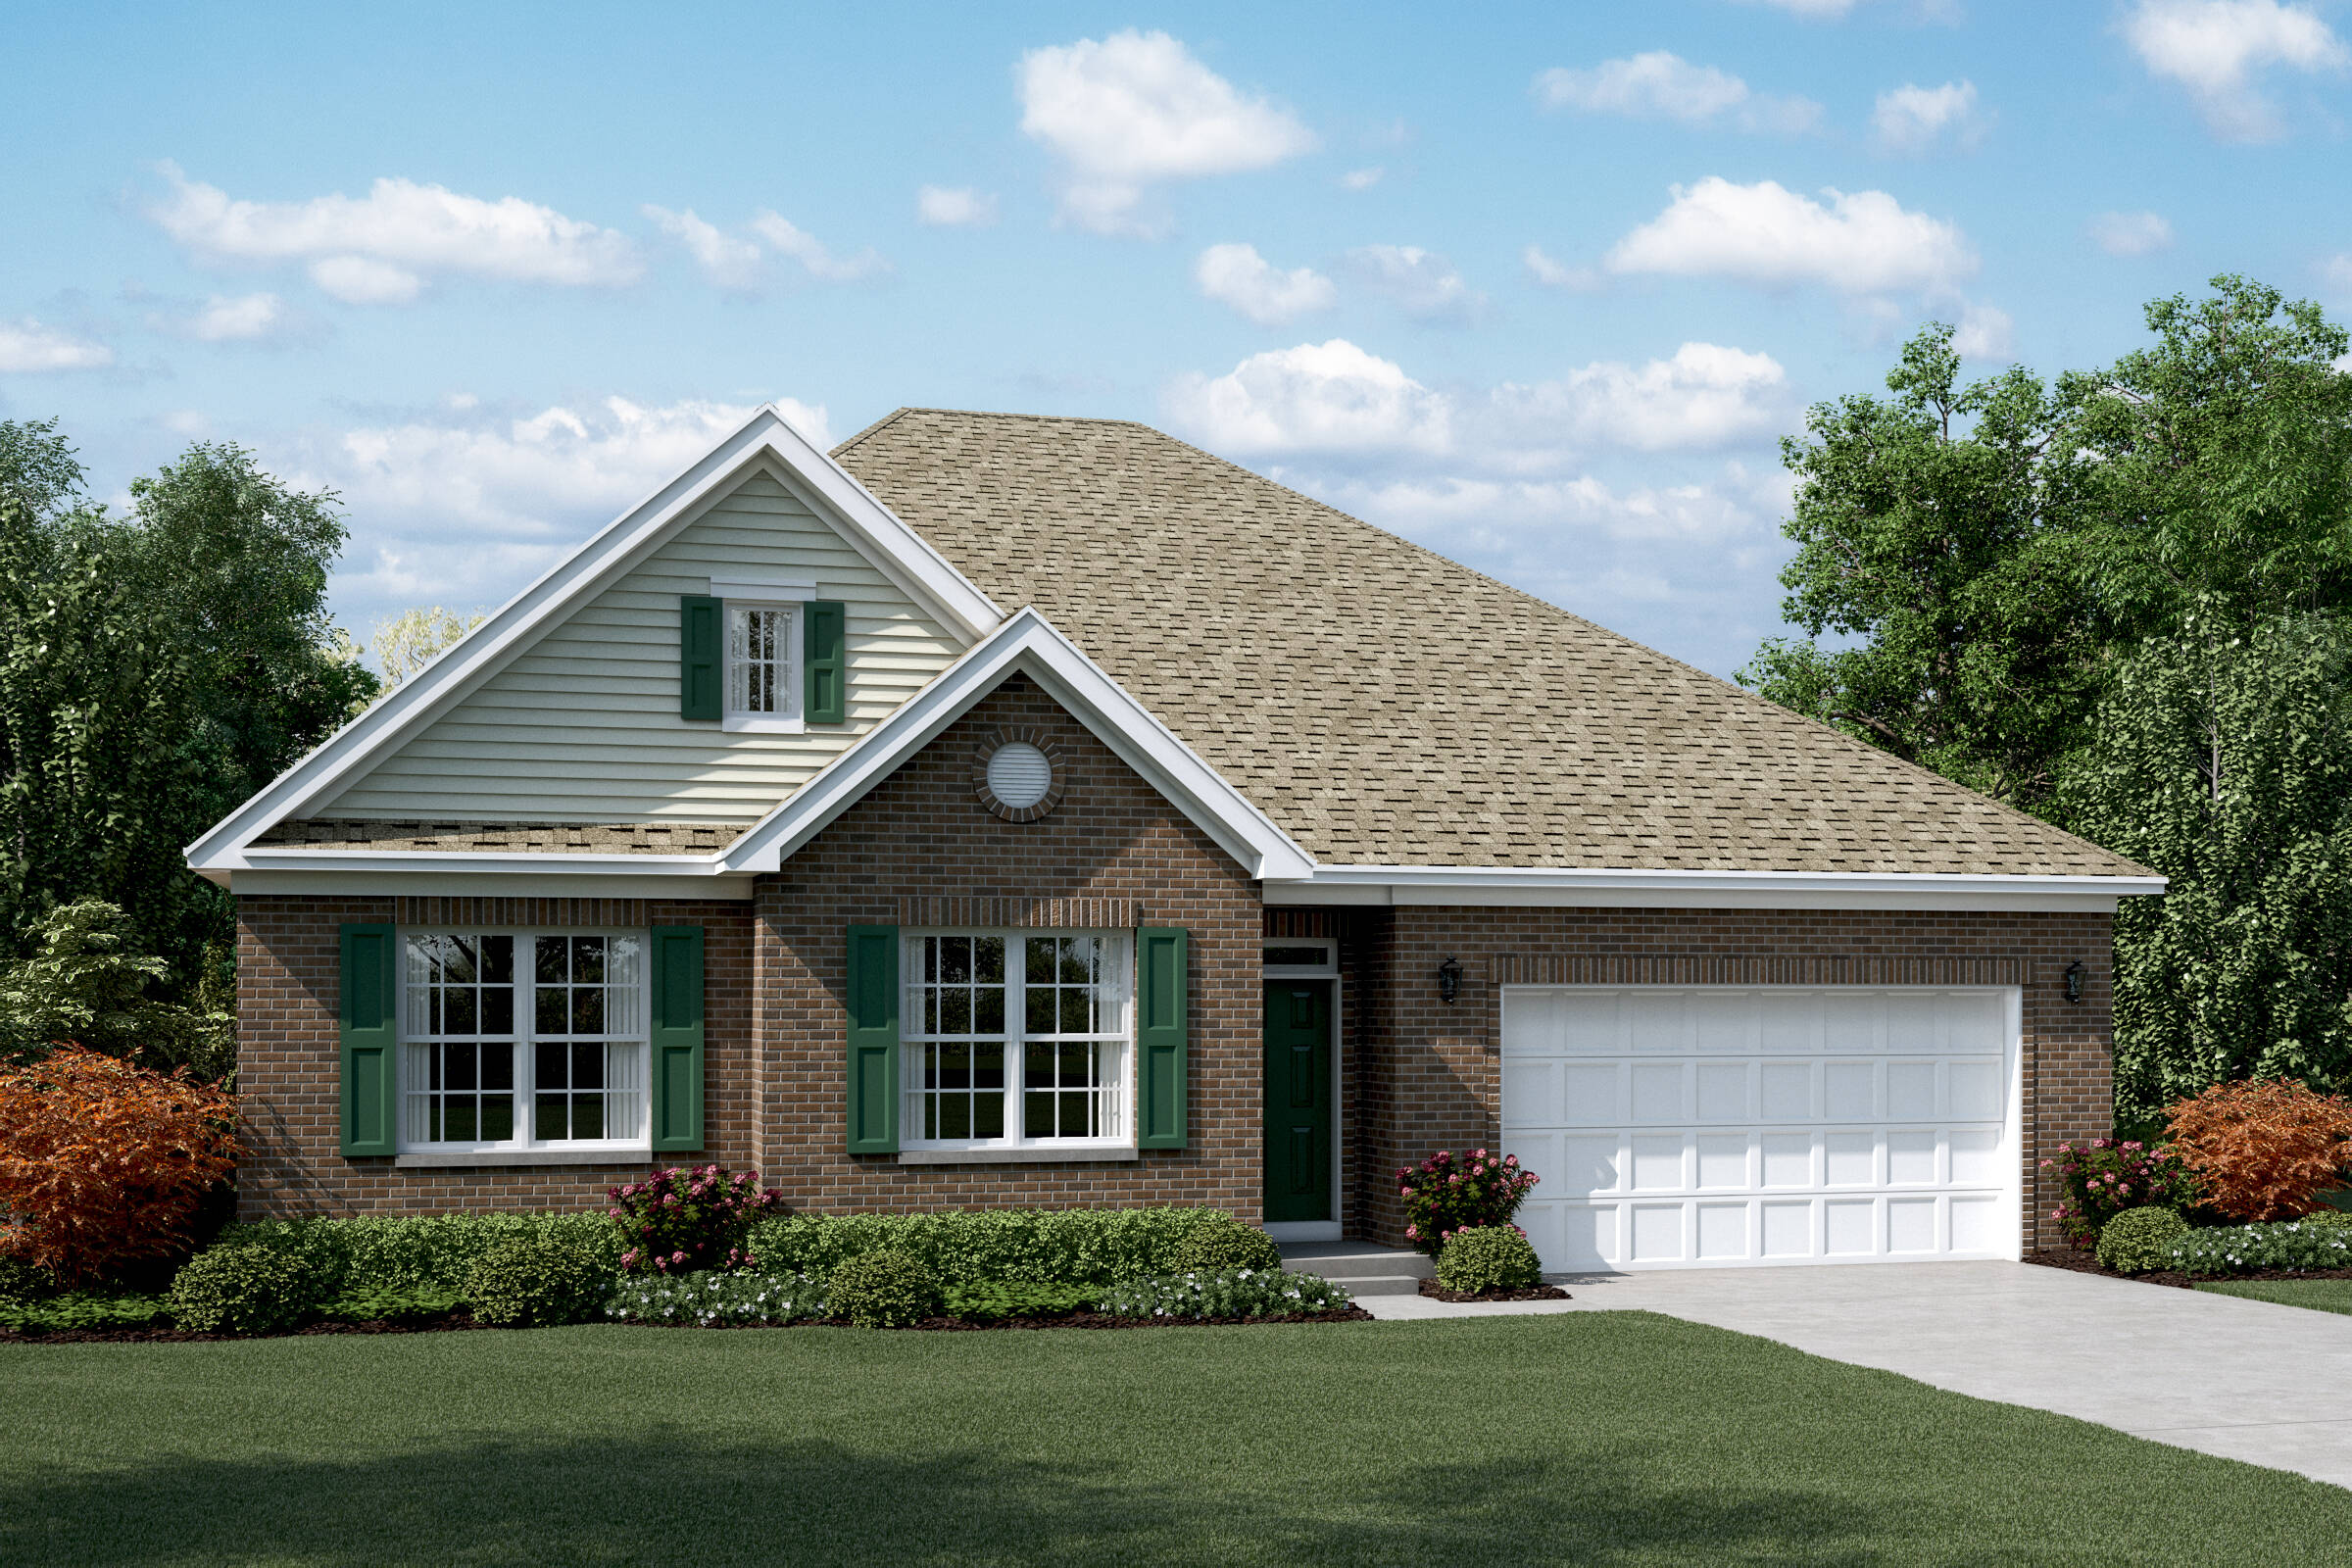 rosewood fb brand new homes manhattan illinois